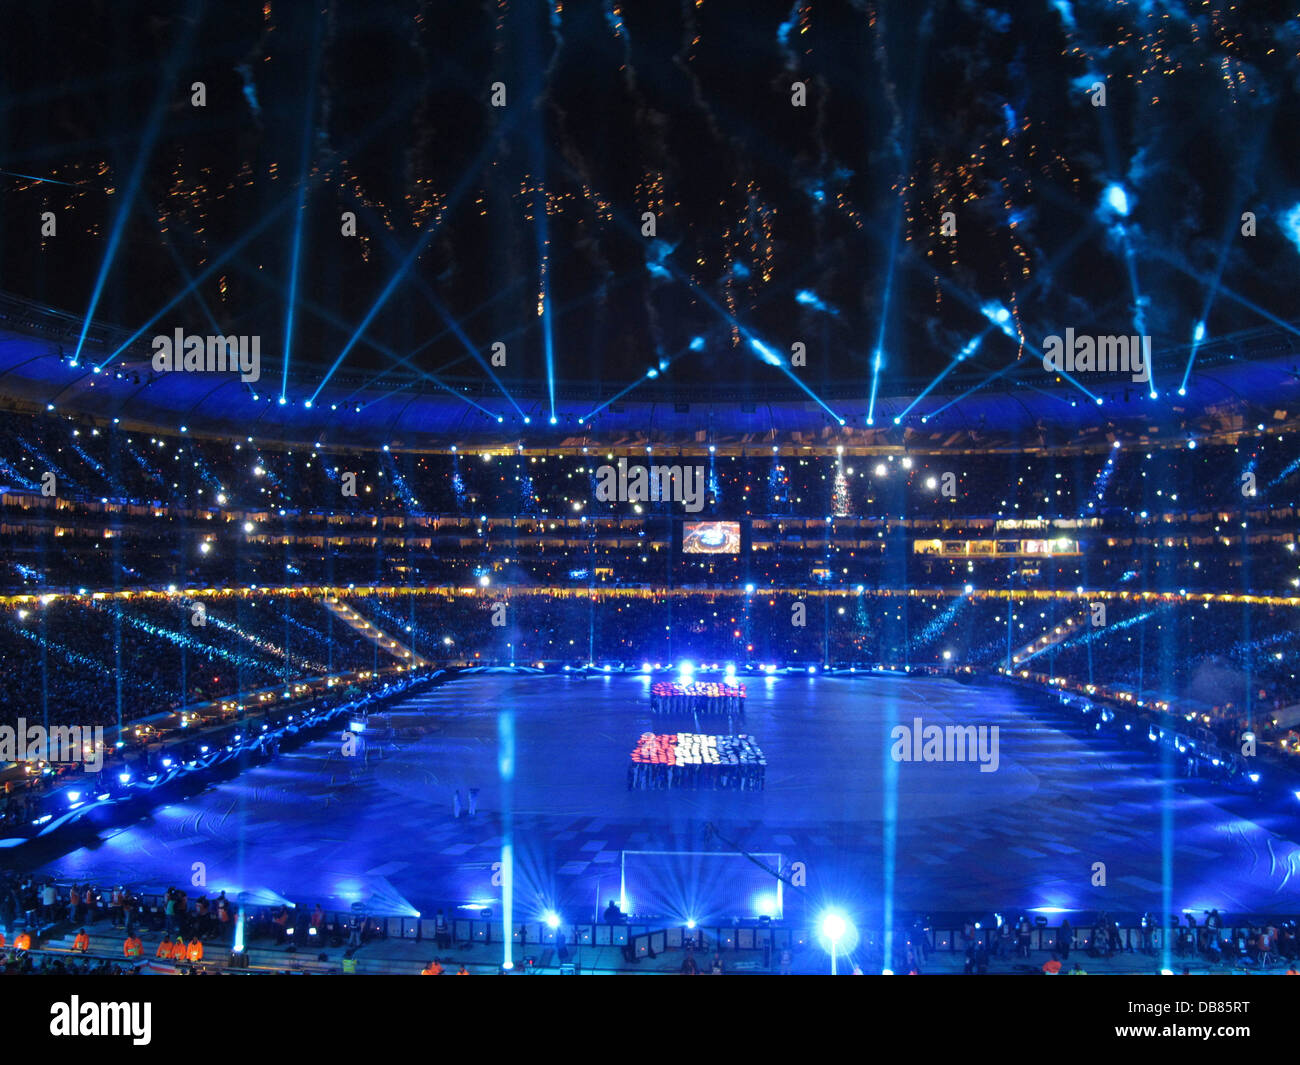 closing ceremony final World Cup Soccer 2010 FNB Stadium in Soweto duriong 2010 FIFA World Cup Soccer in South Africa - Stock Image